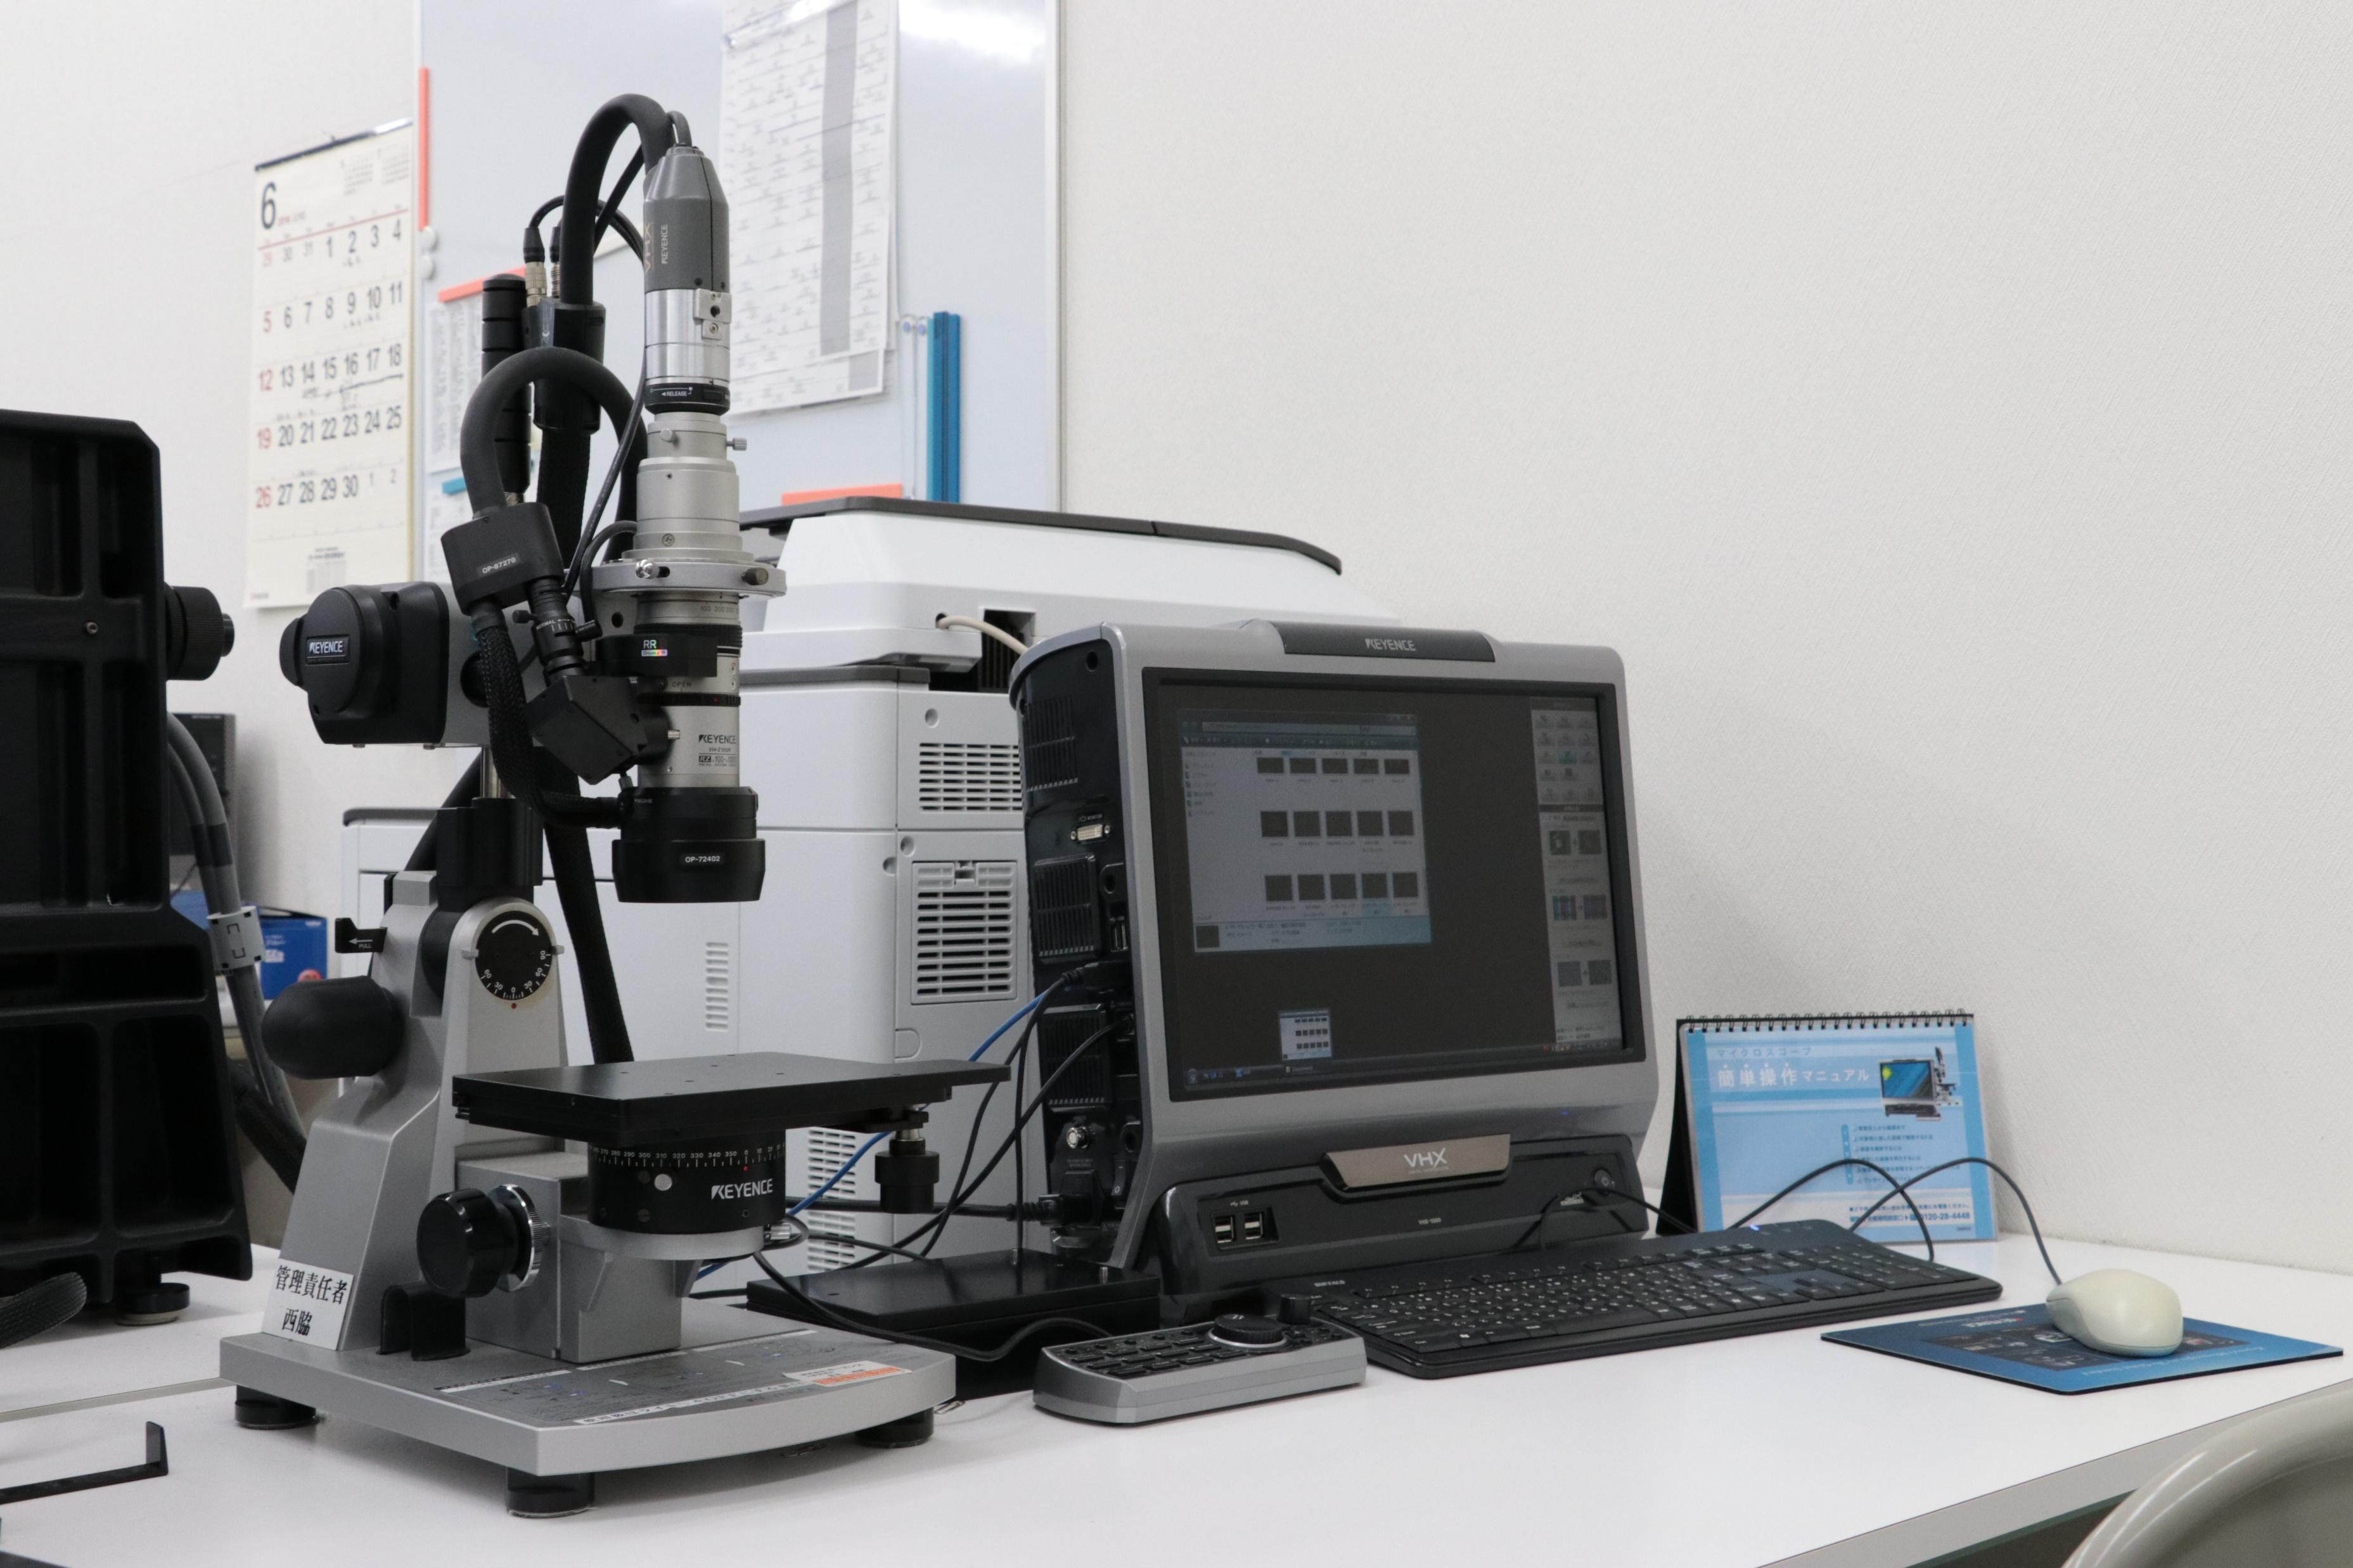 Digital Microscope VHX-1000